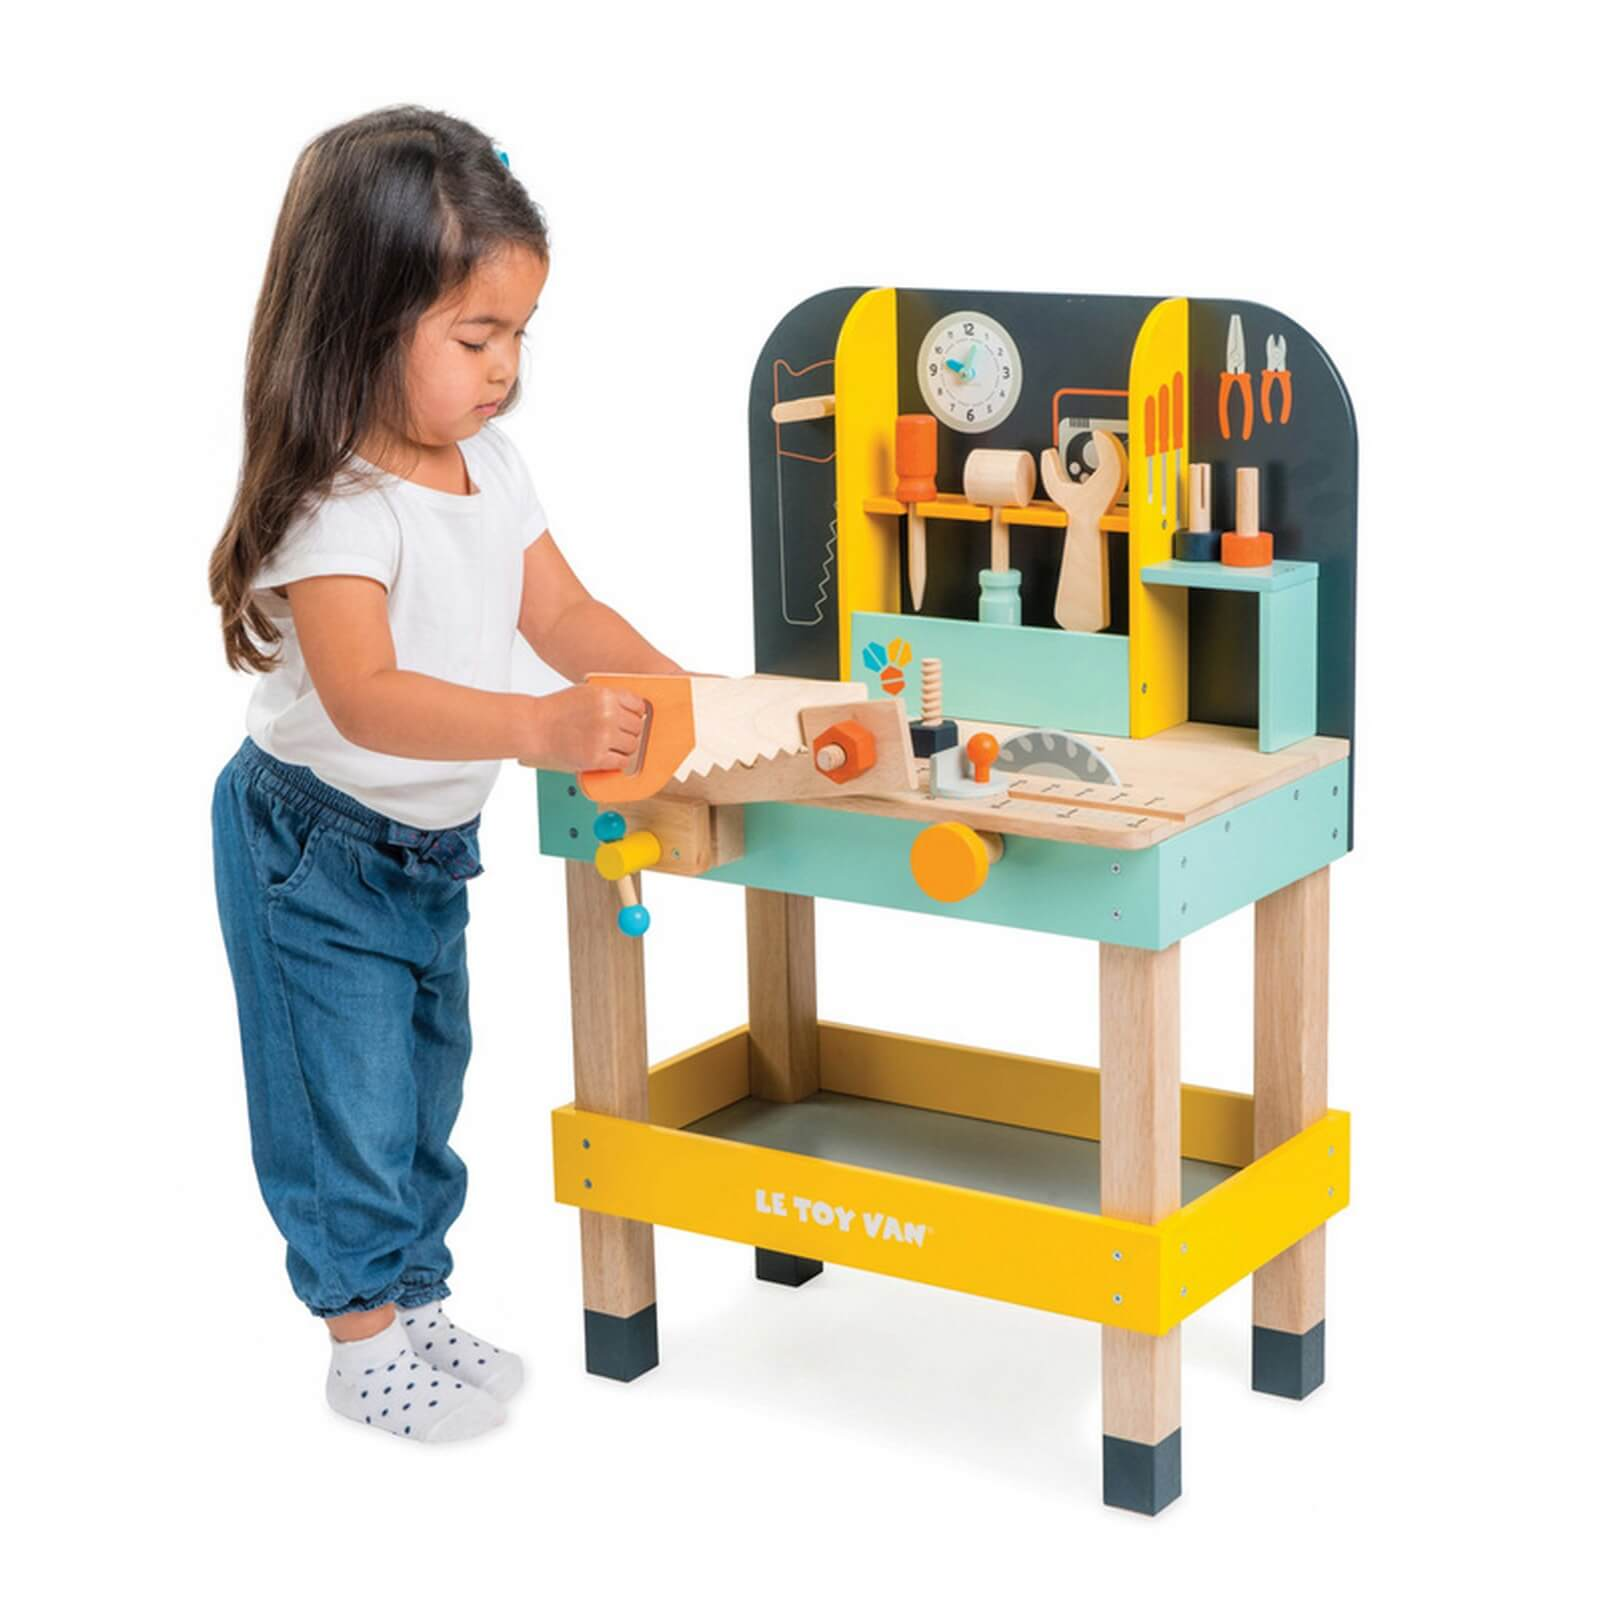 Toys For Work : Le toy van alex s work bench jadrem toys